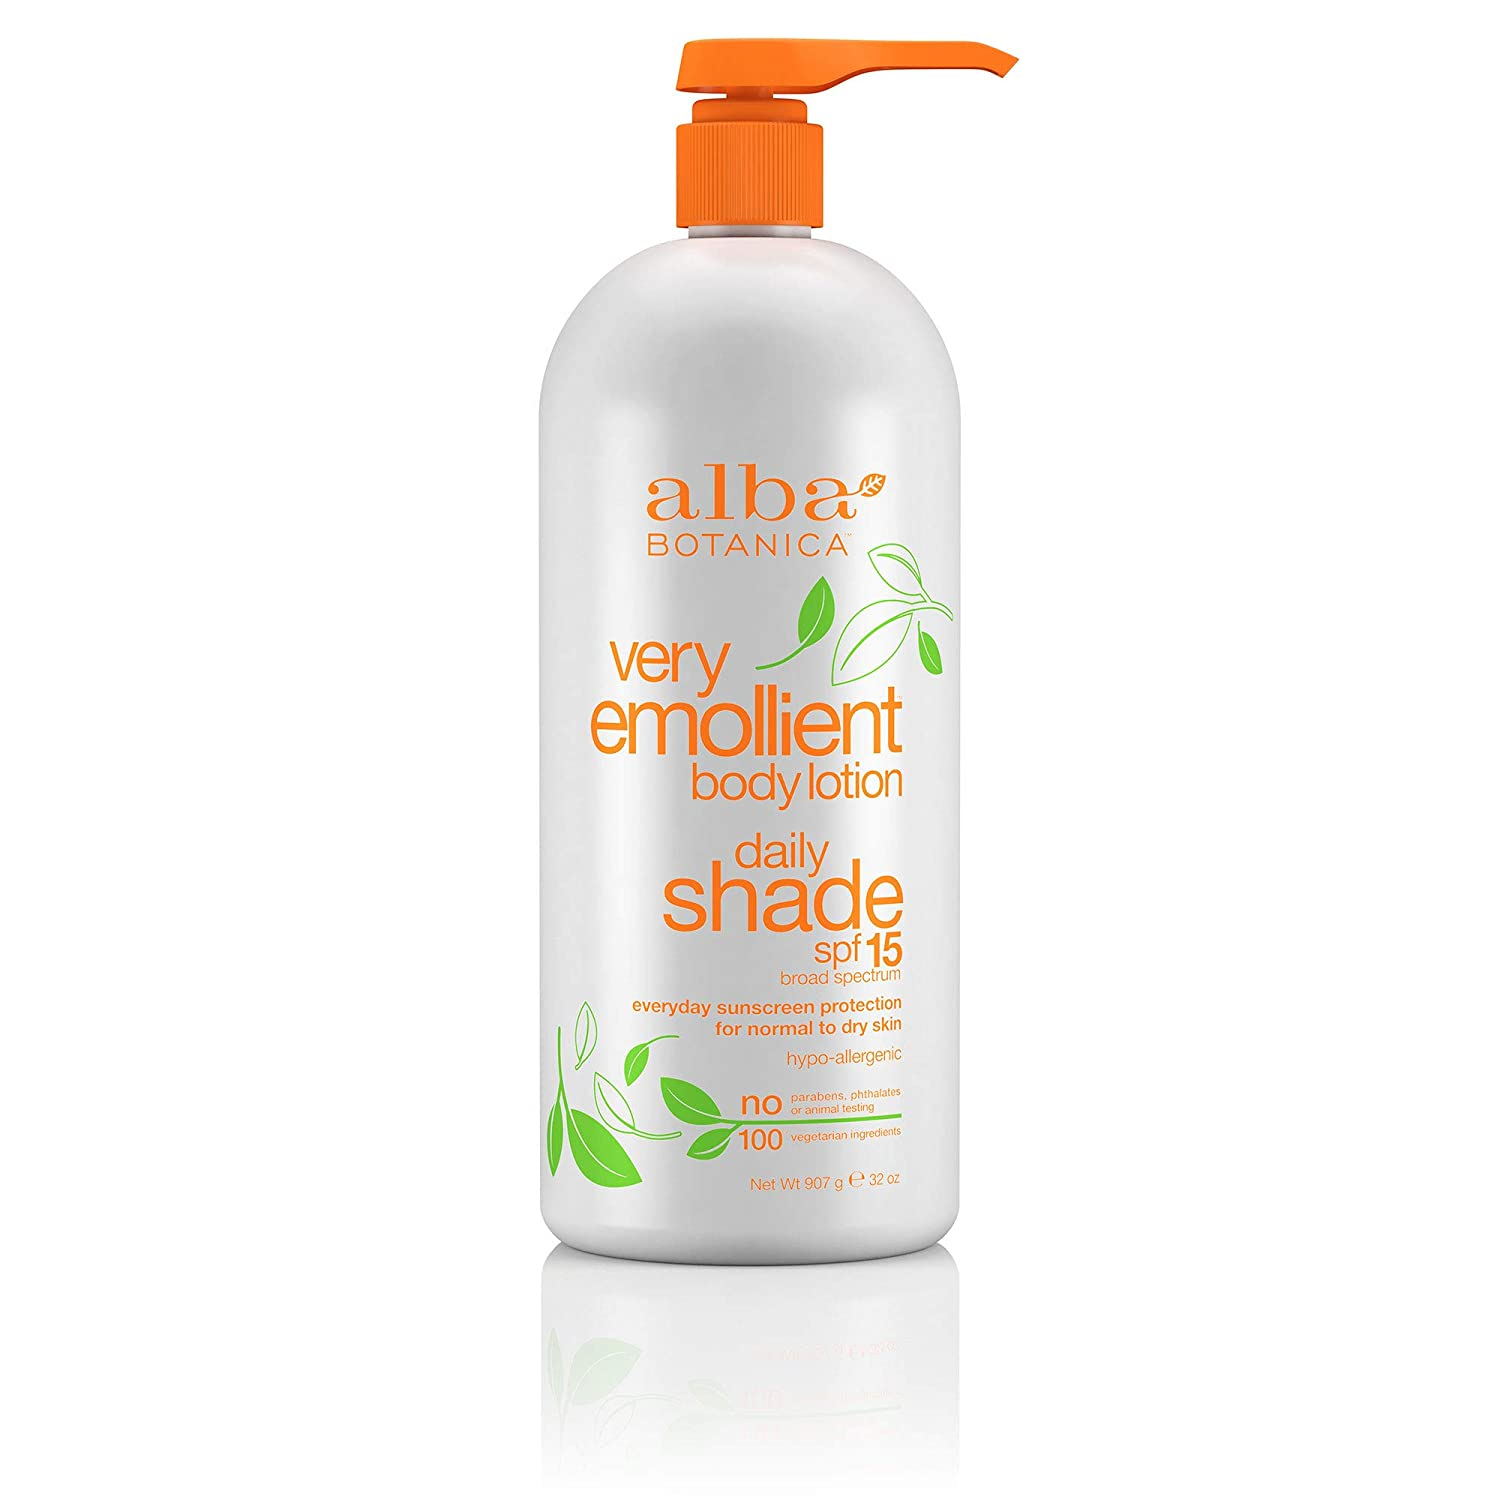 Alba Botanica Very Emollient, Daily Shade Lotion SPF 15